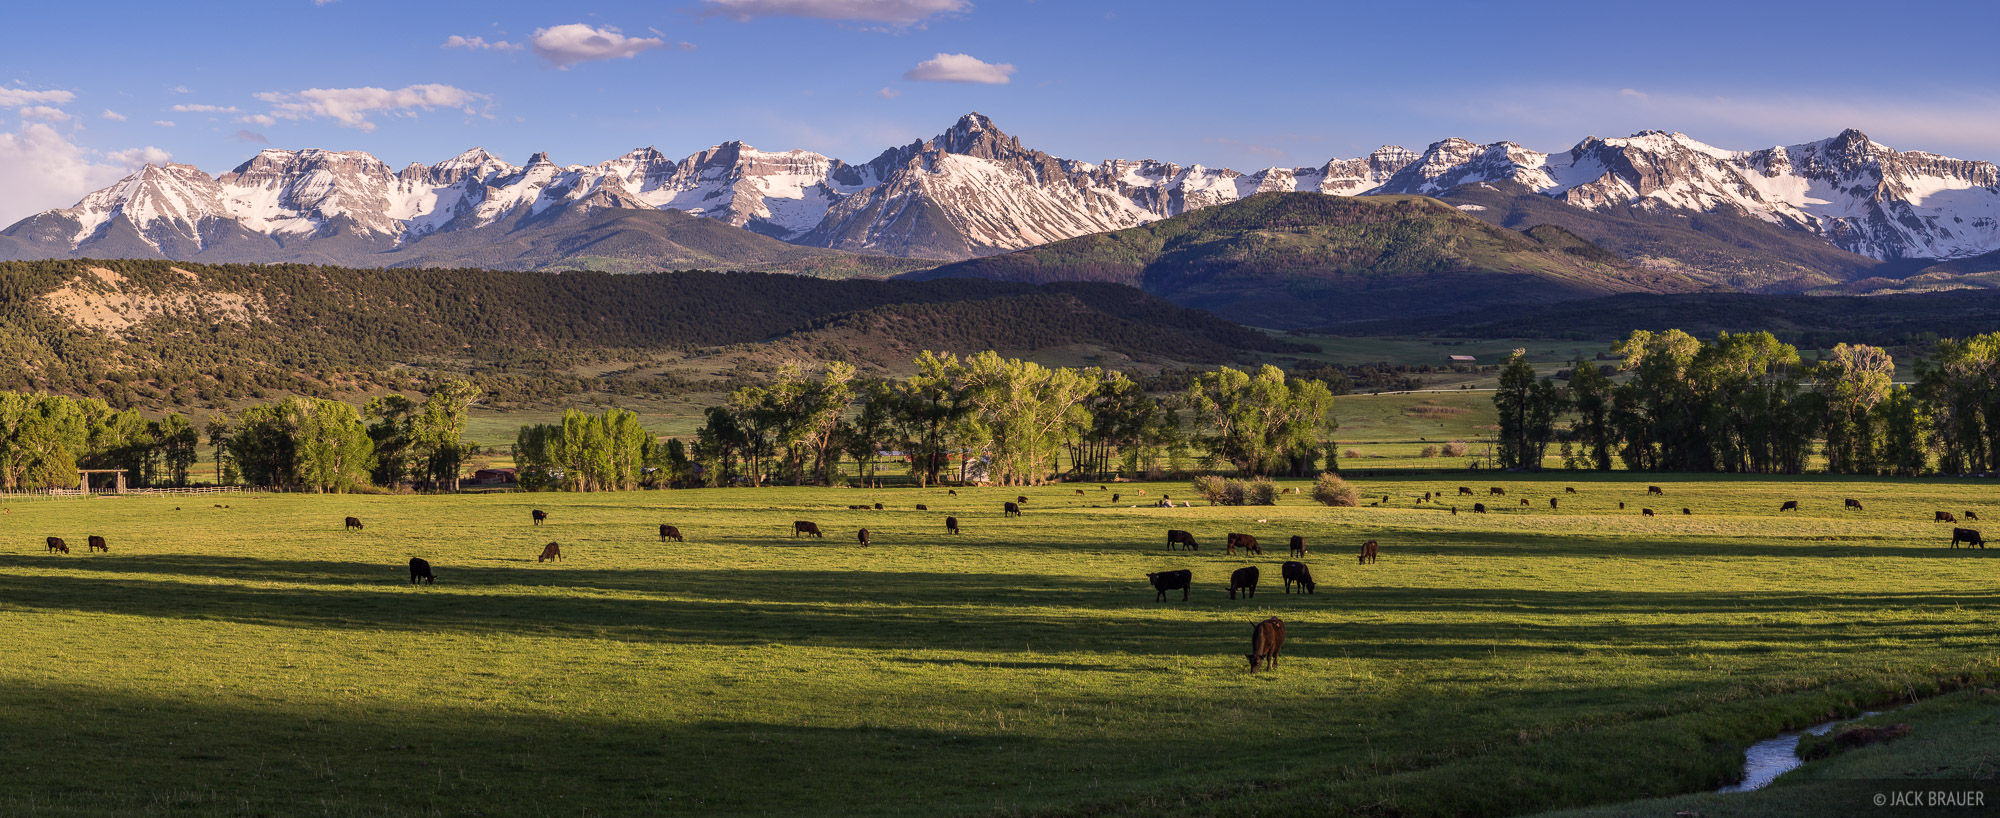 Colorado,San Juan Mountains,Sneffels Range, Pleasant Valley, panorama, cattle, Ridgway, photo